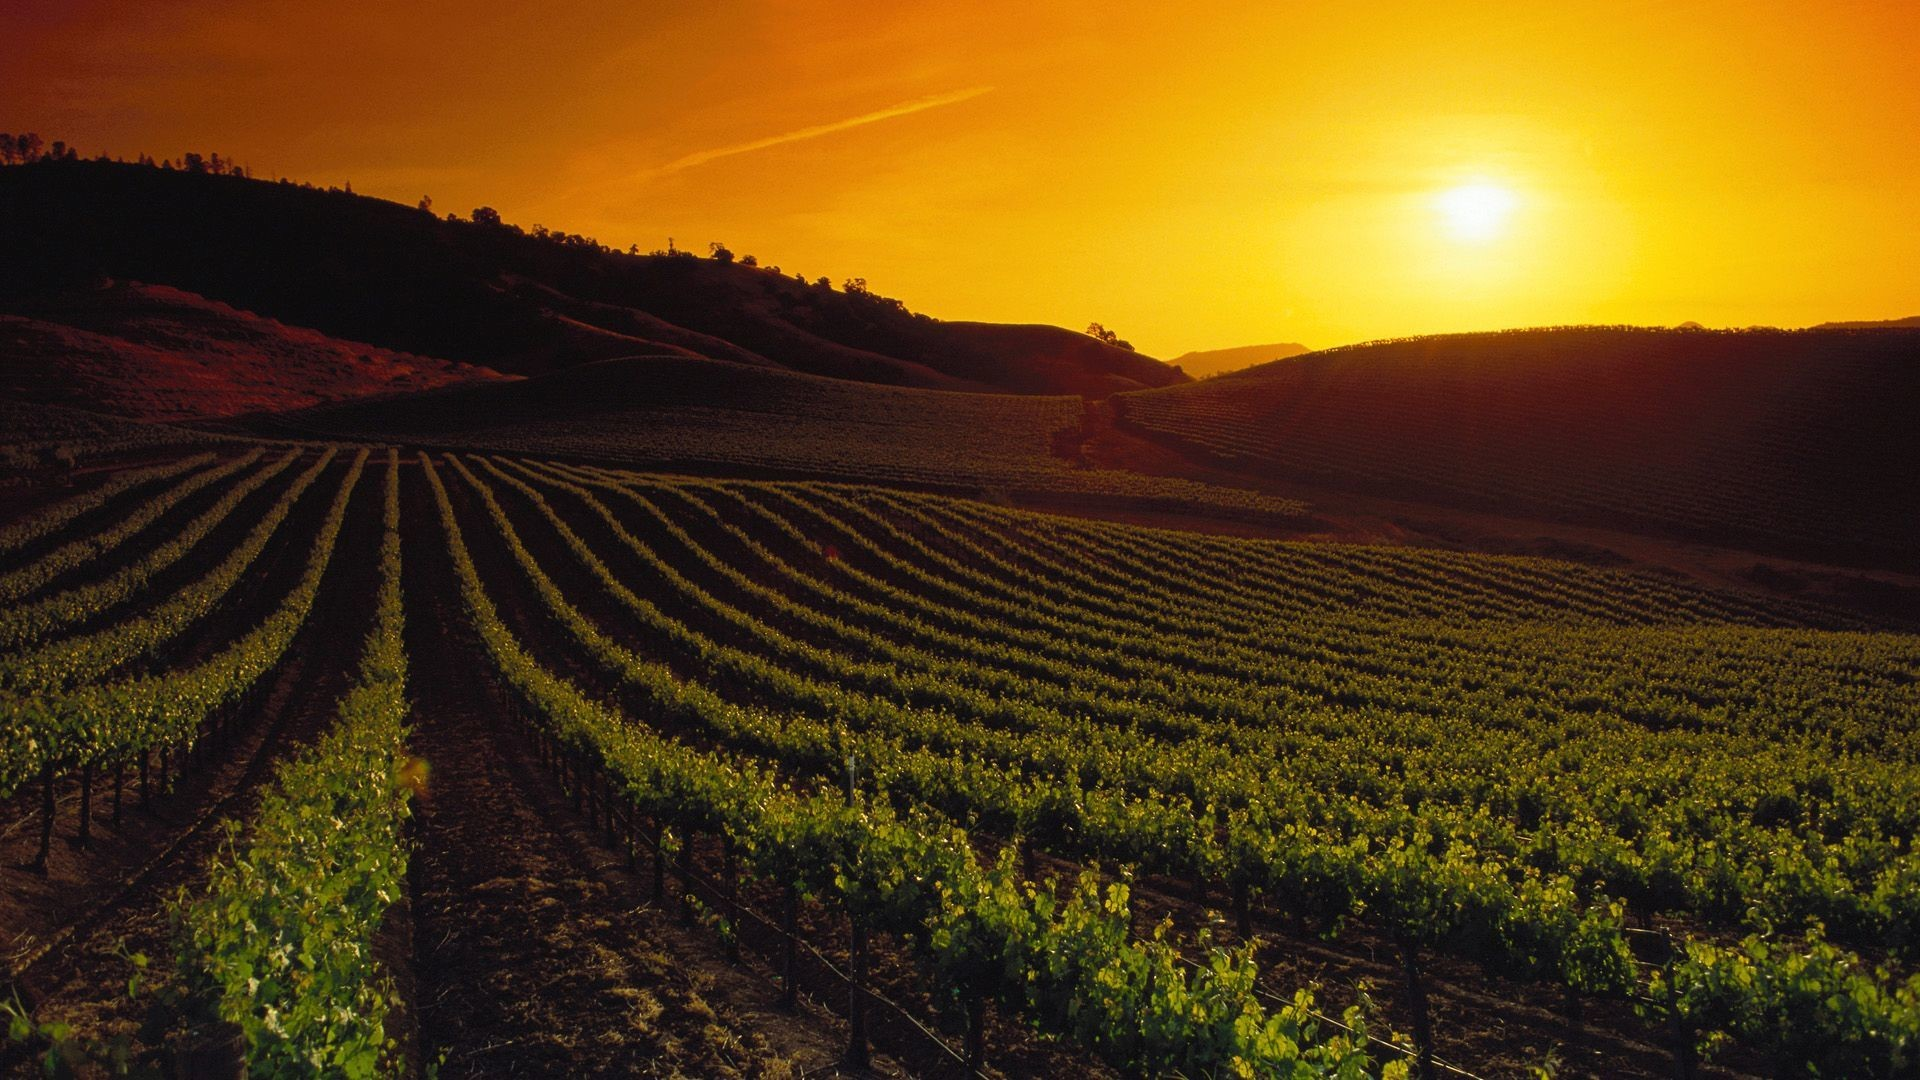 1920x1080 Sunset over the vineyard HD Wallpaper